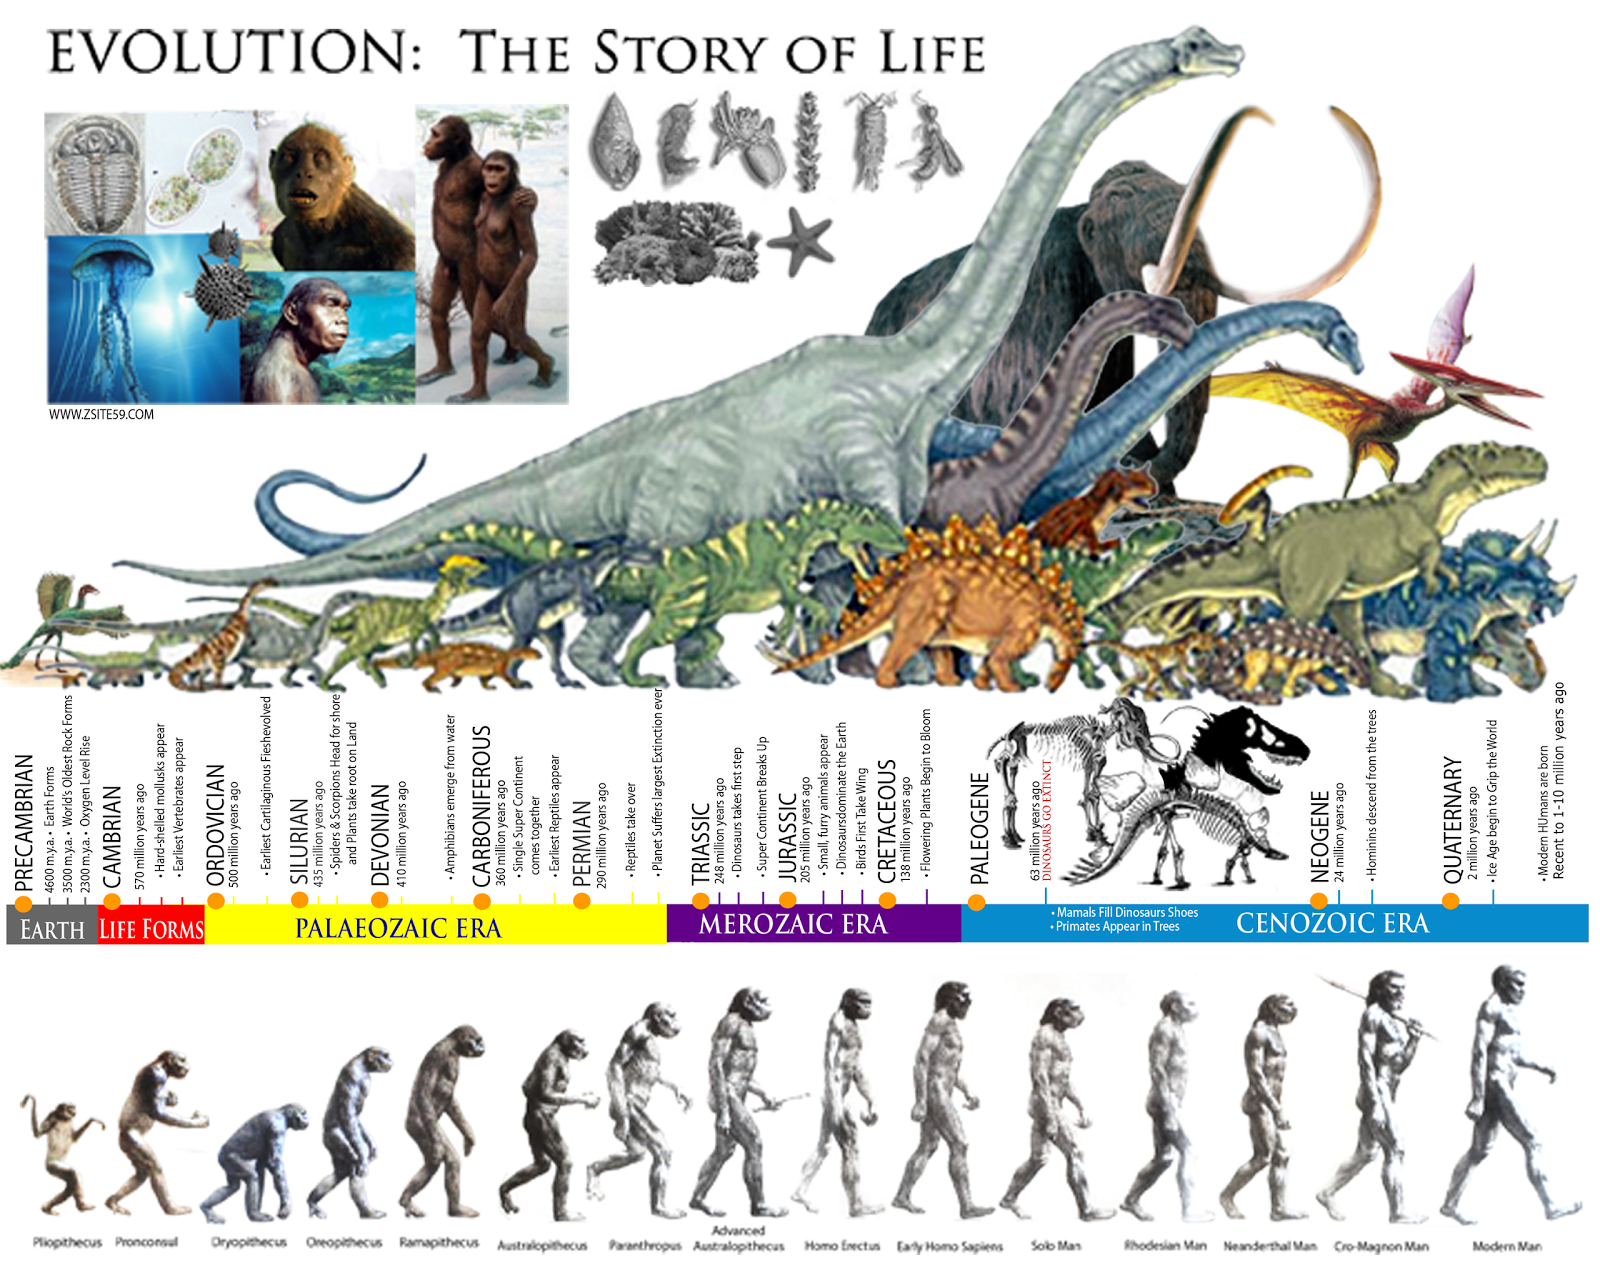 Species, Kinds, and Evolution